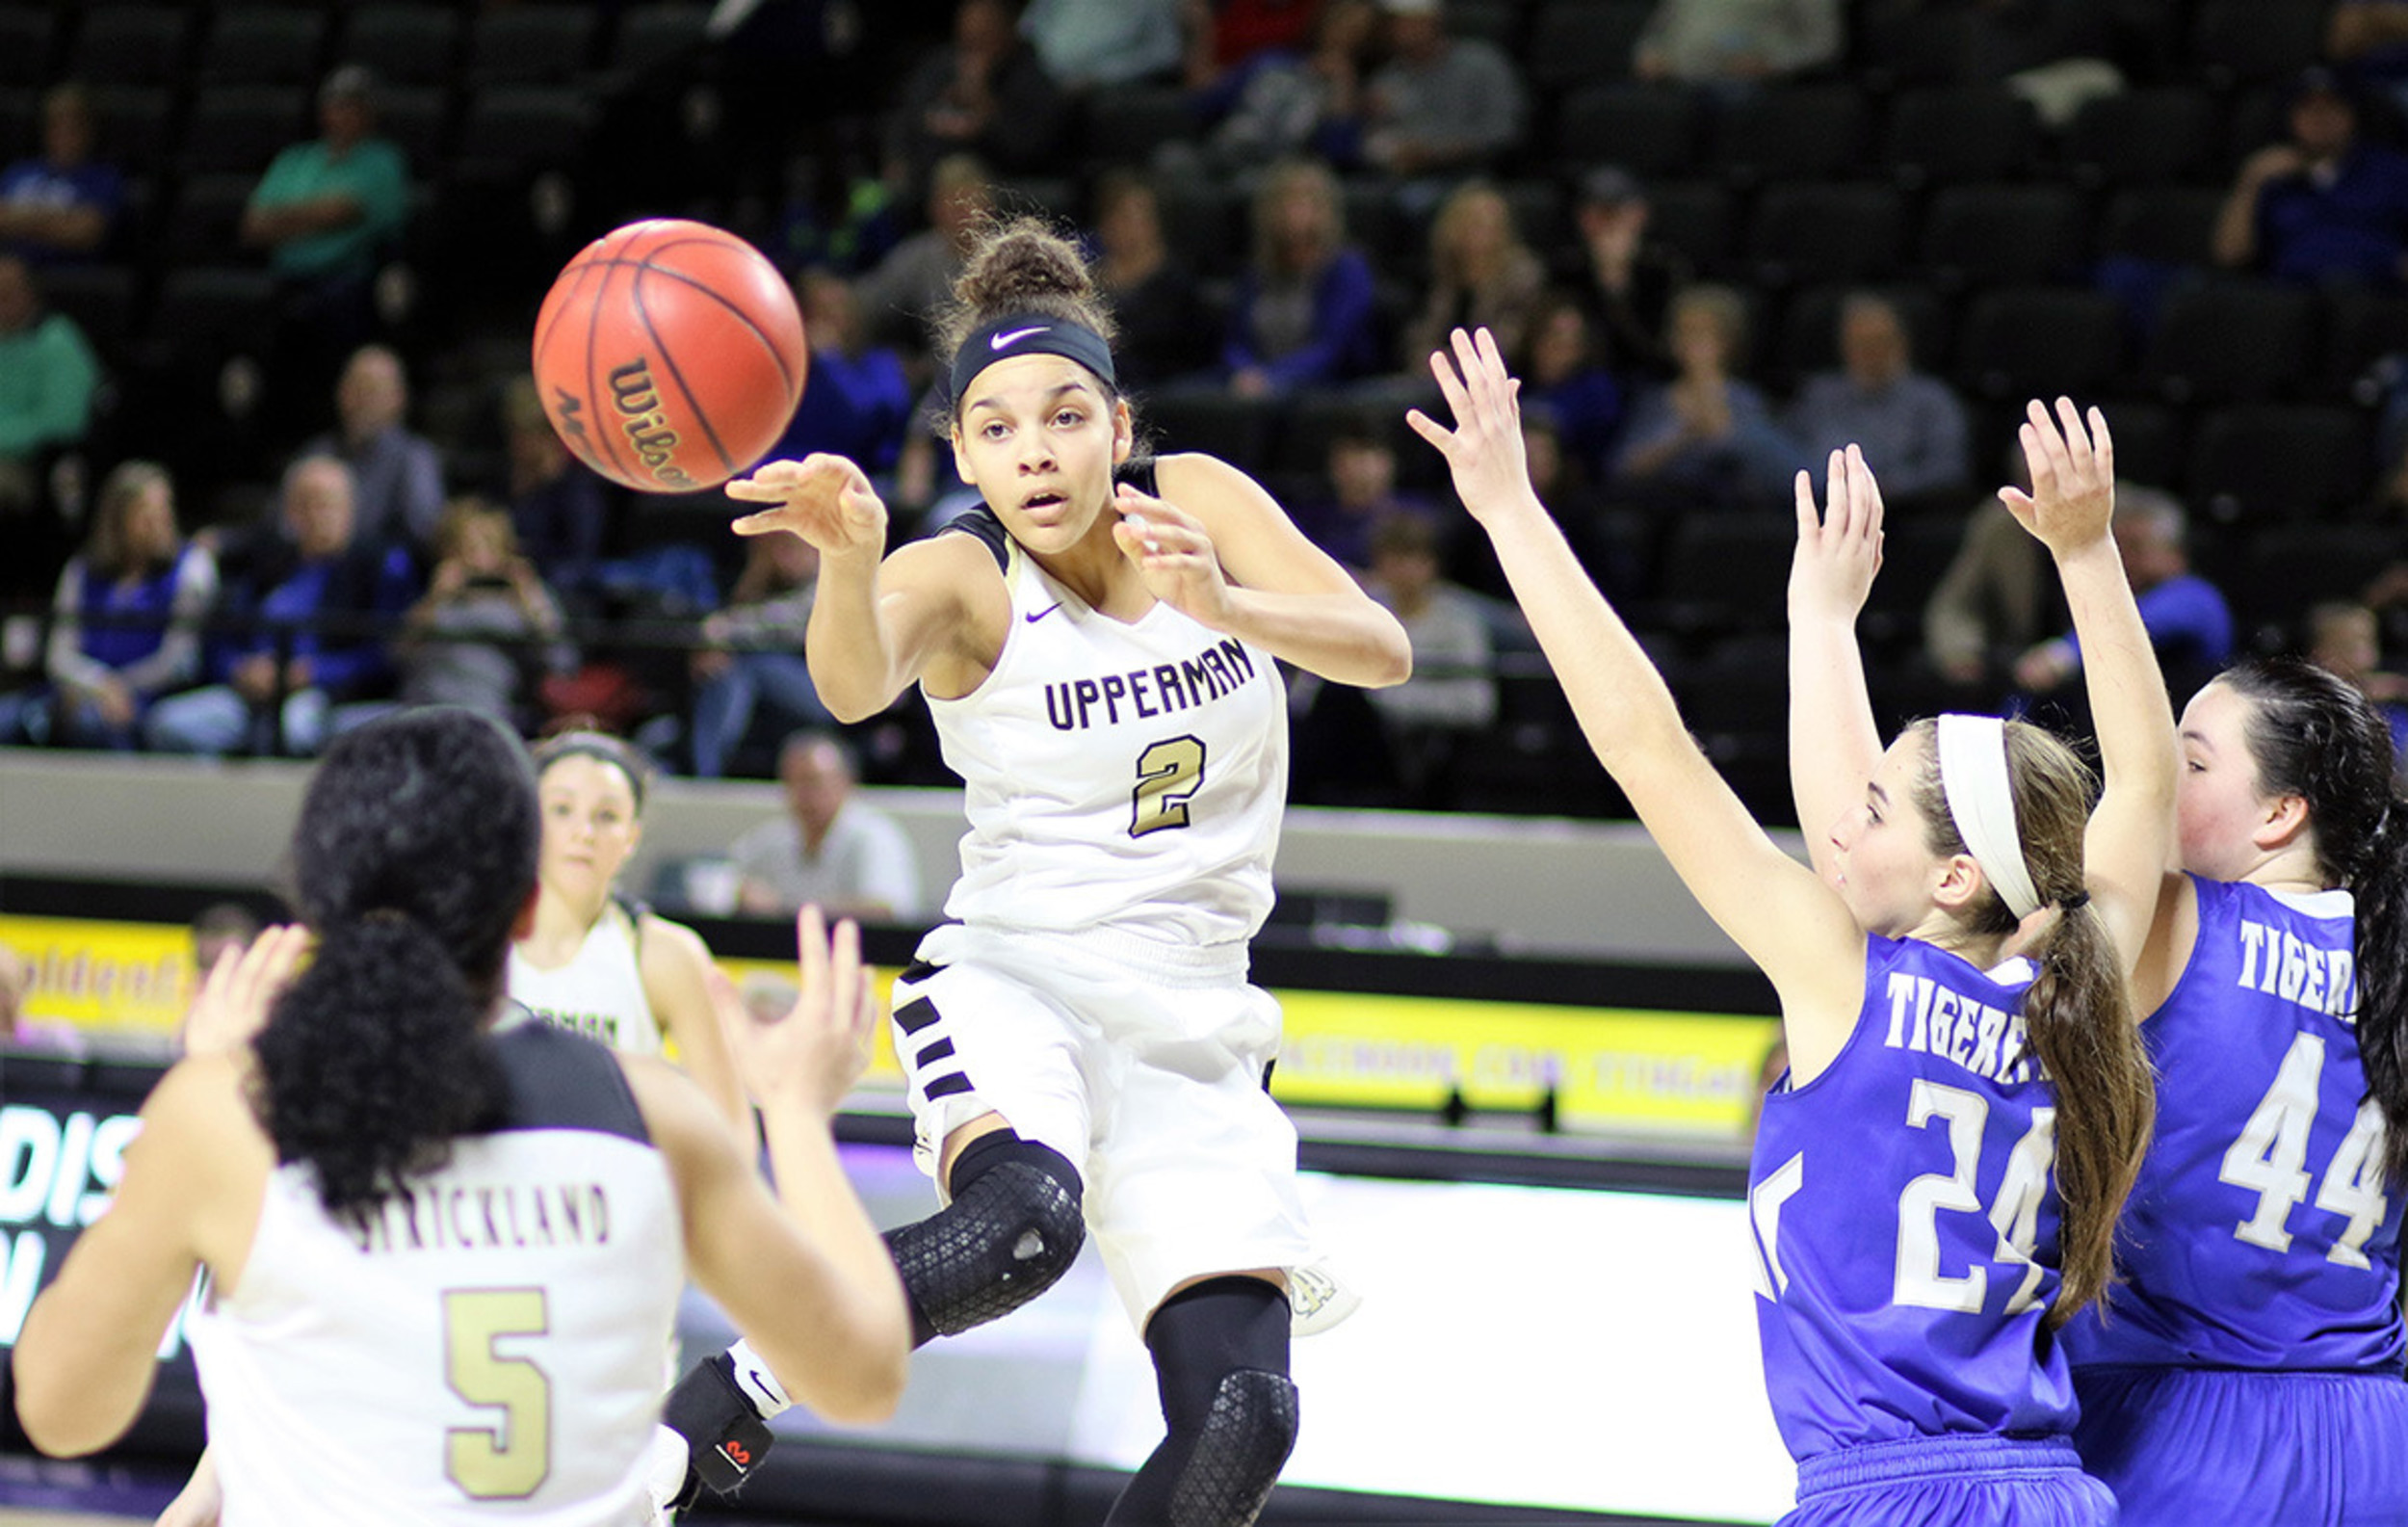 Upperman's Akira Levy dishes to teammate Lexie Strickland during the ...